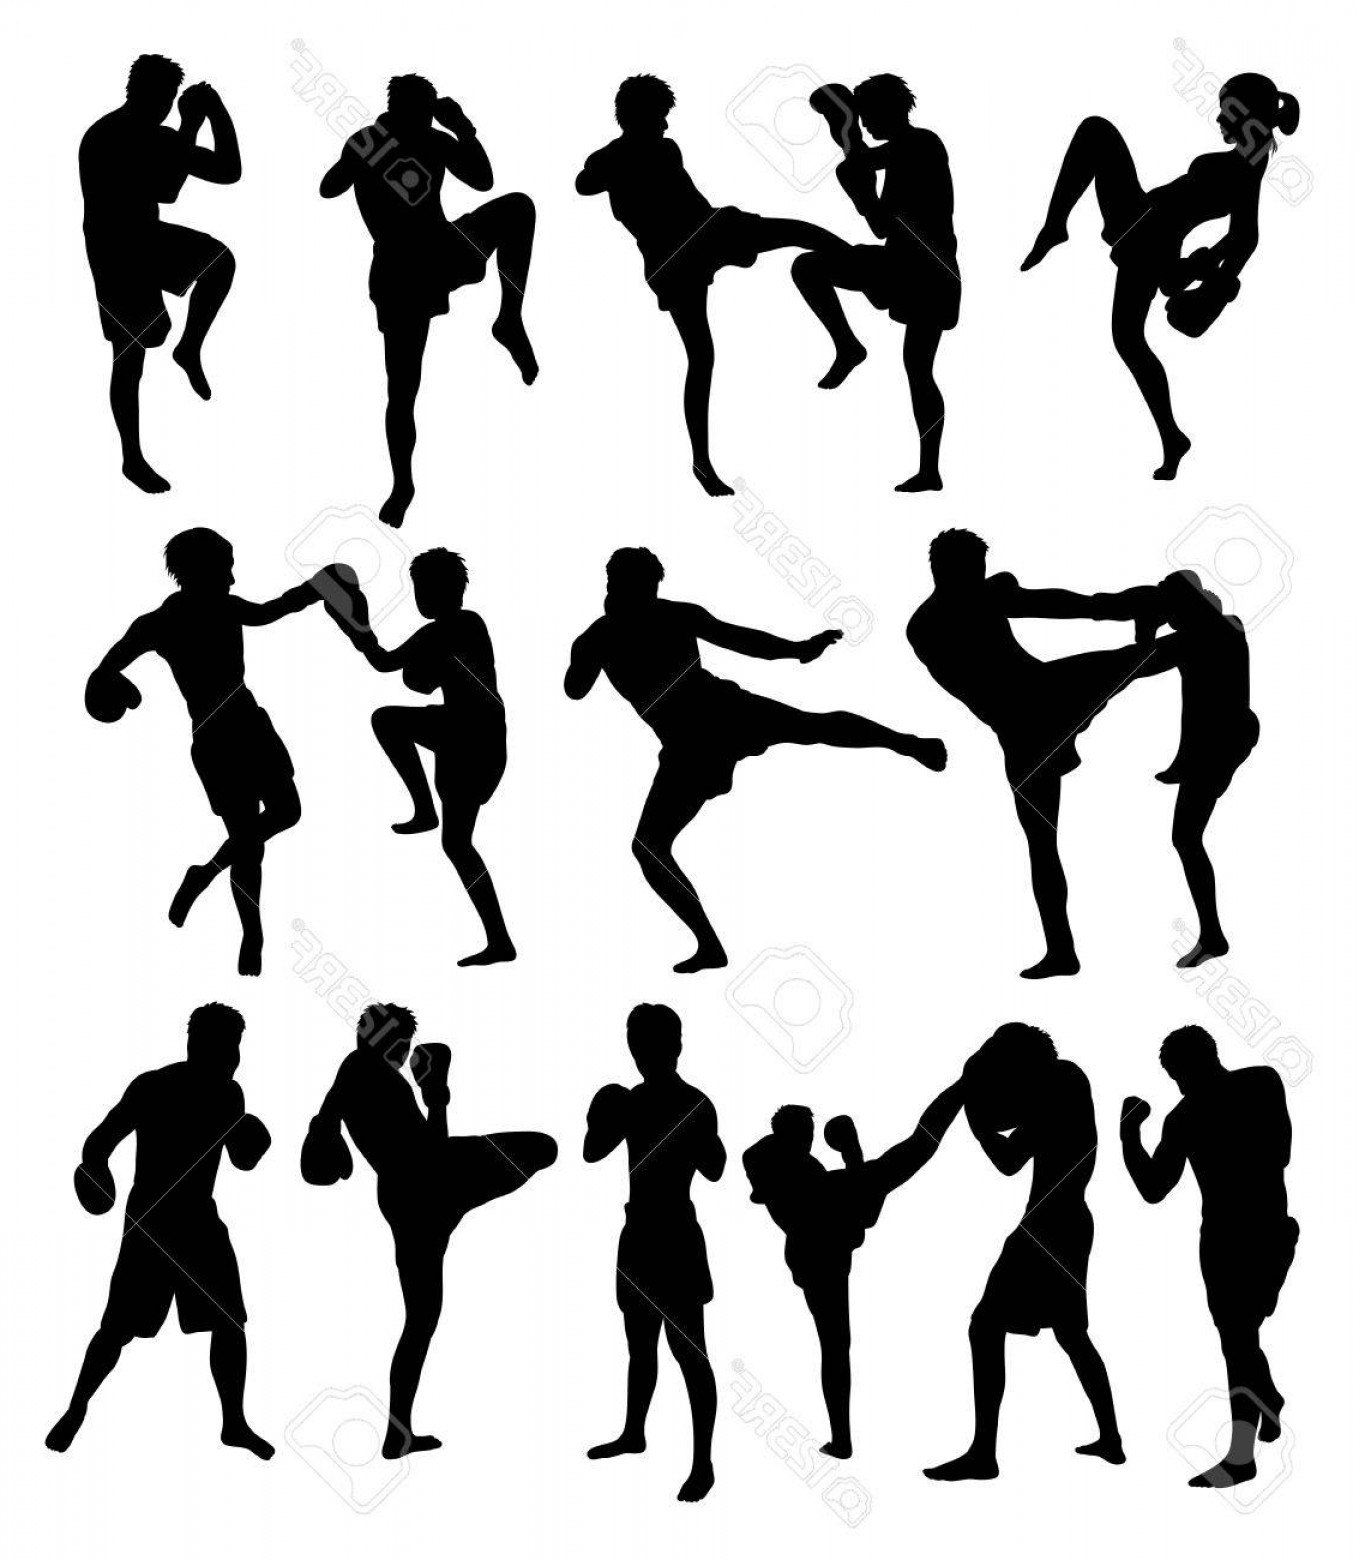 UFC Kick Vector: Photostock Vector Muay Thai Or Kickboxing Silhouettes Art Vector Design